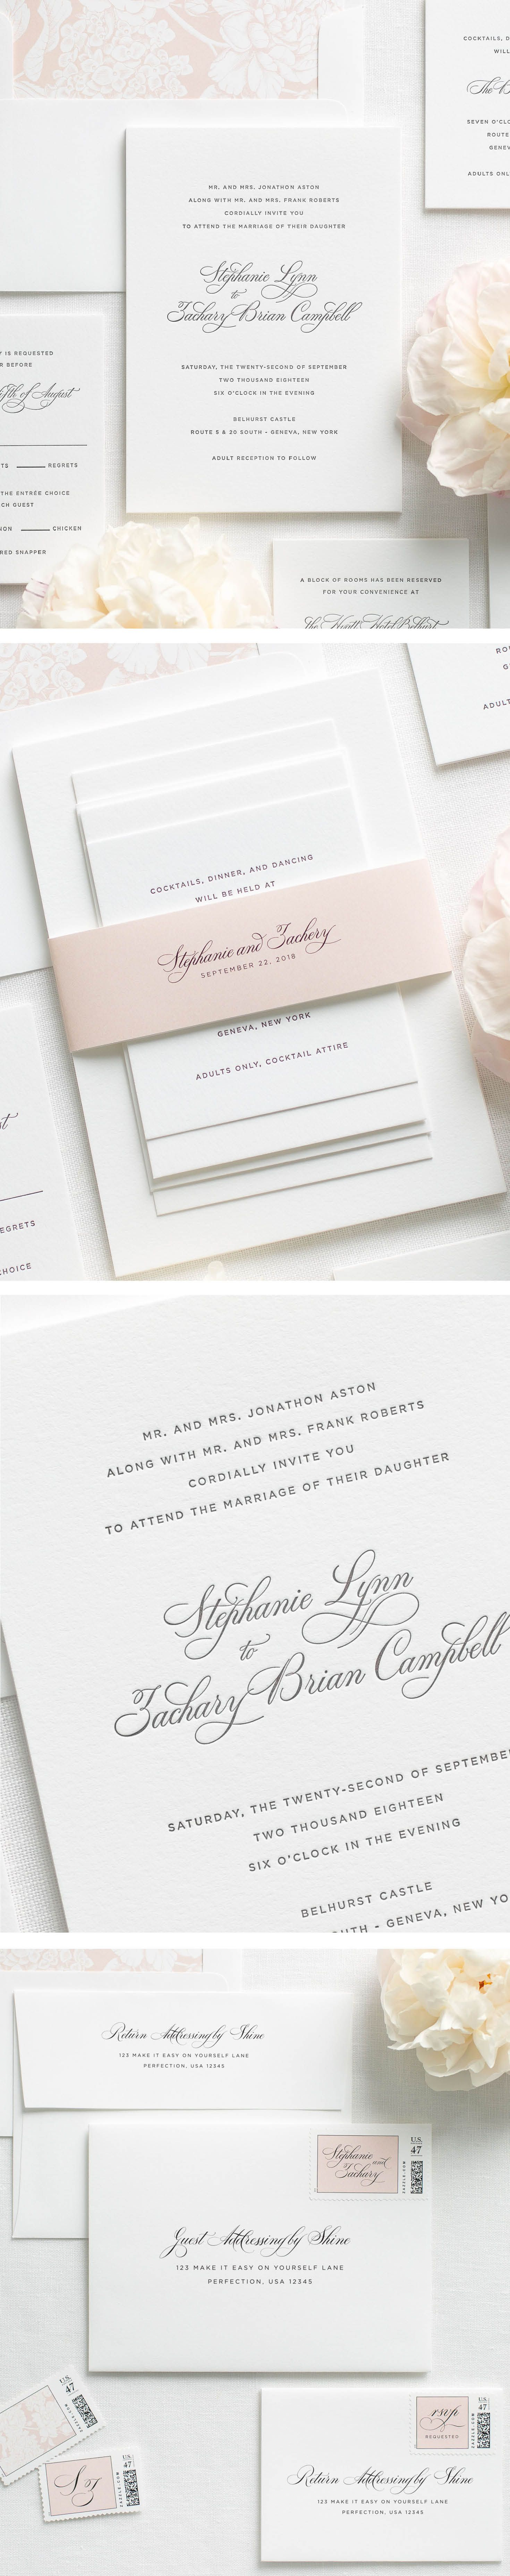 Delicate elegance letterpress wedding invitations invitaciones letterpress wedding invitations styled to perfection featuring elegant calligraphy customizable envelope liners ribbon solutioingenieria Choice Image